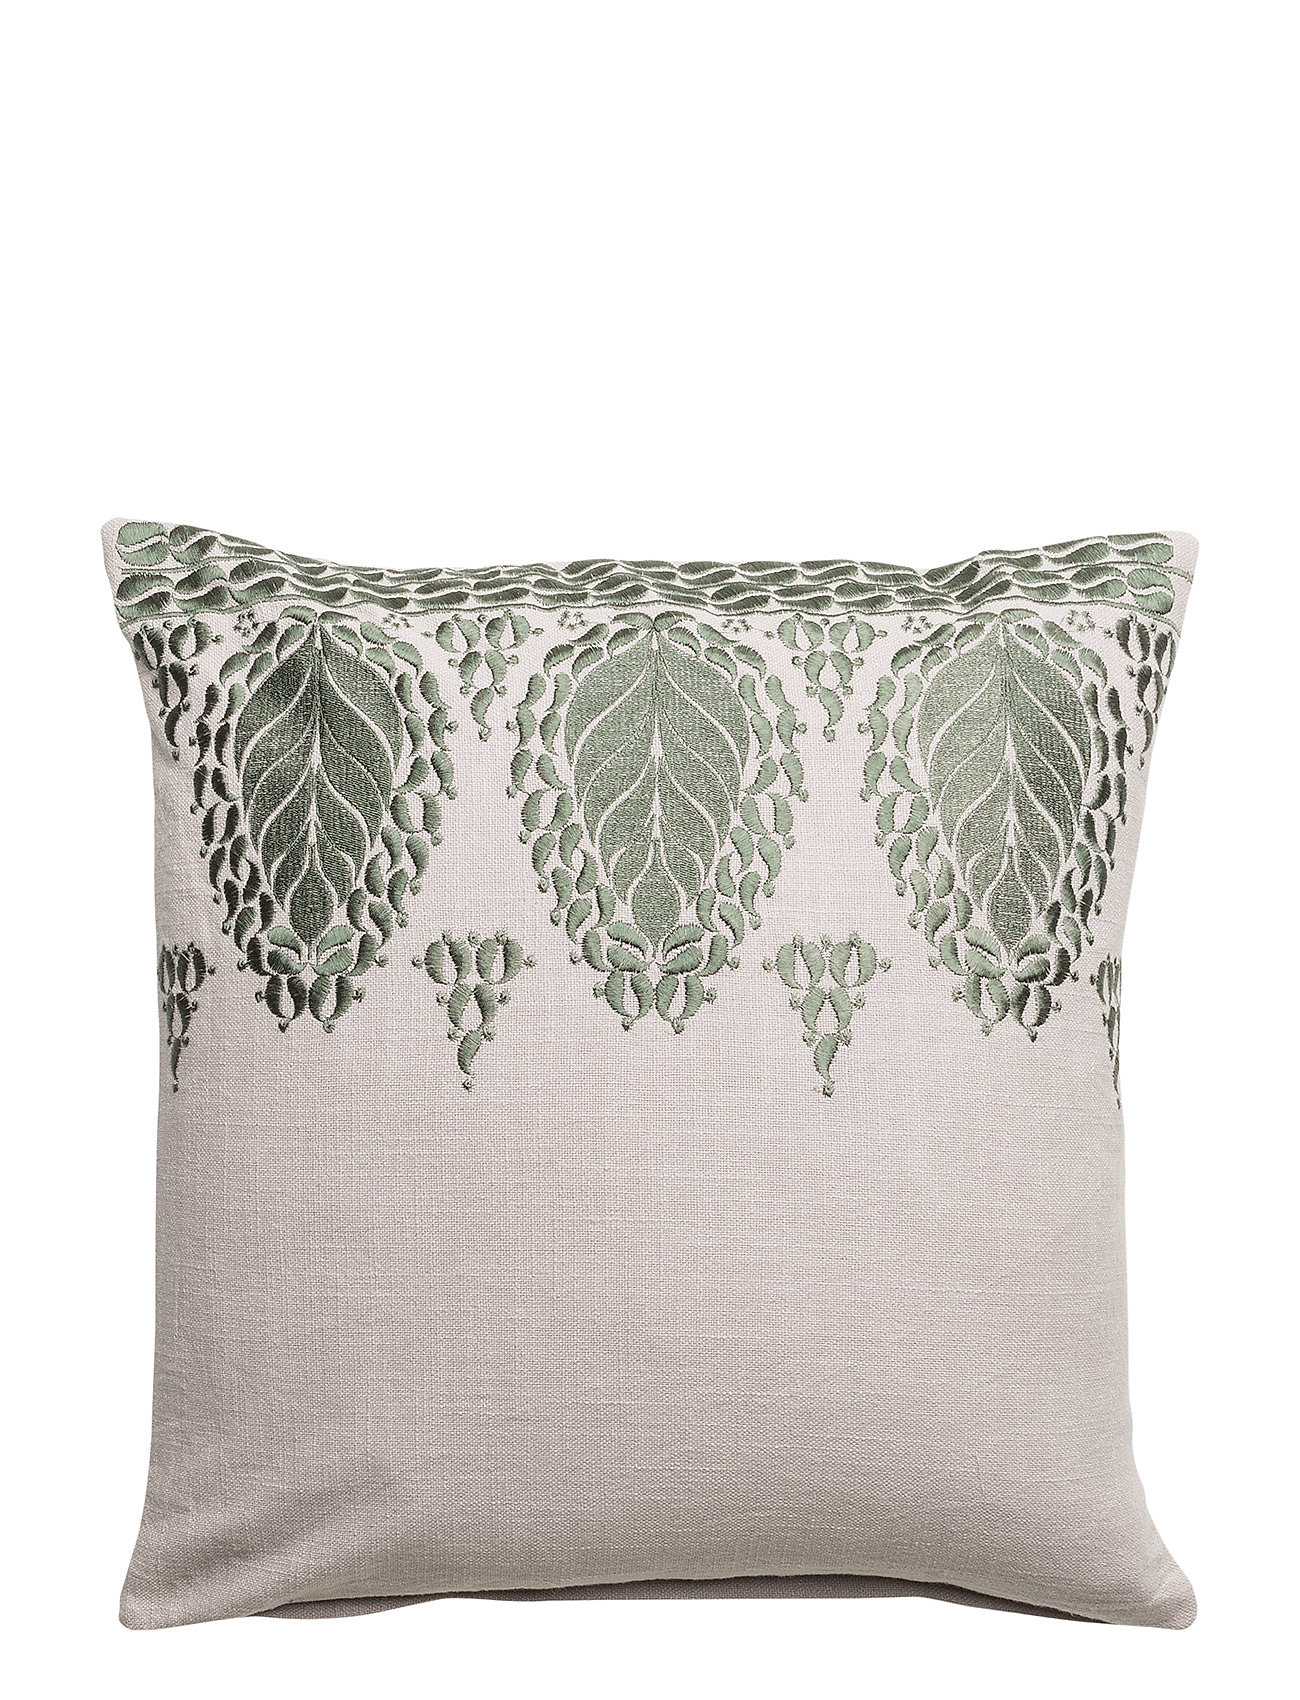 DAY Home Day Empress Cushion Cover - ASHIS